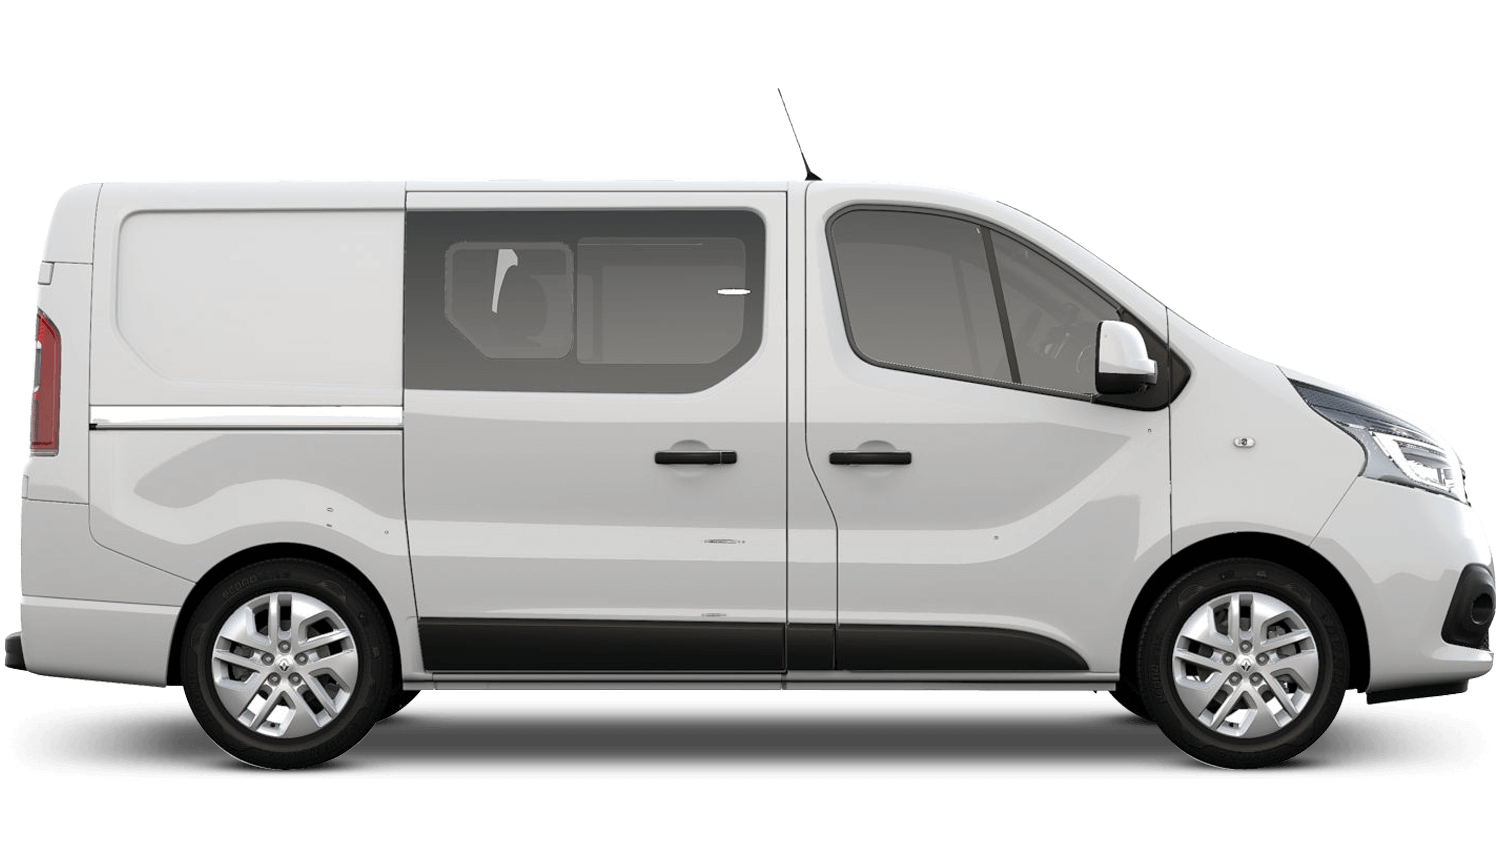 Glacier White (Metallic) New Renault TRAFIC